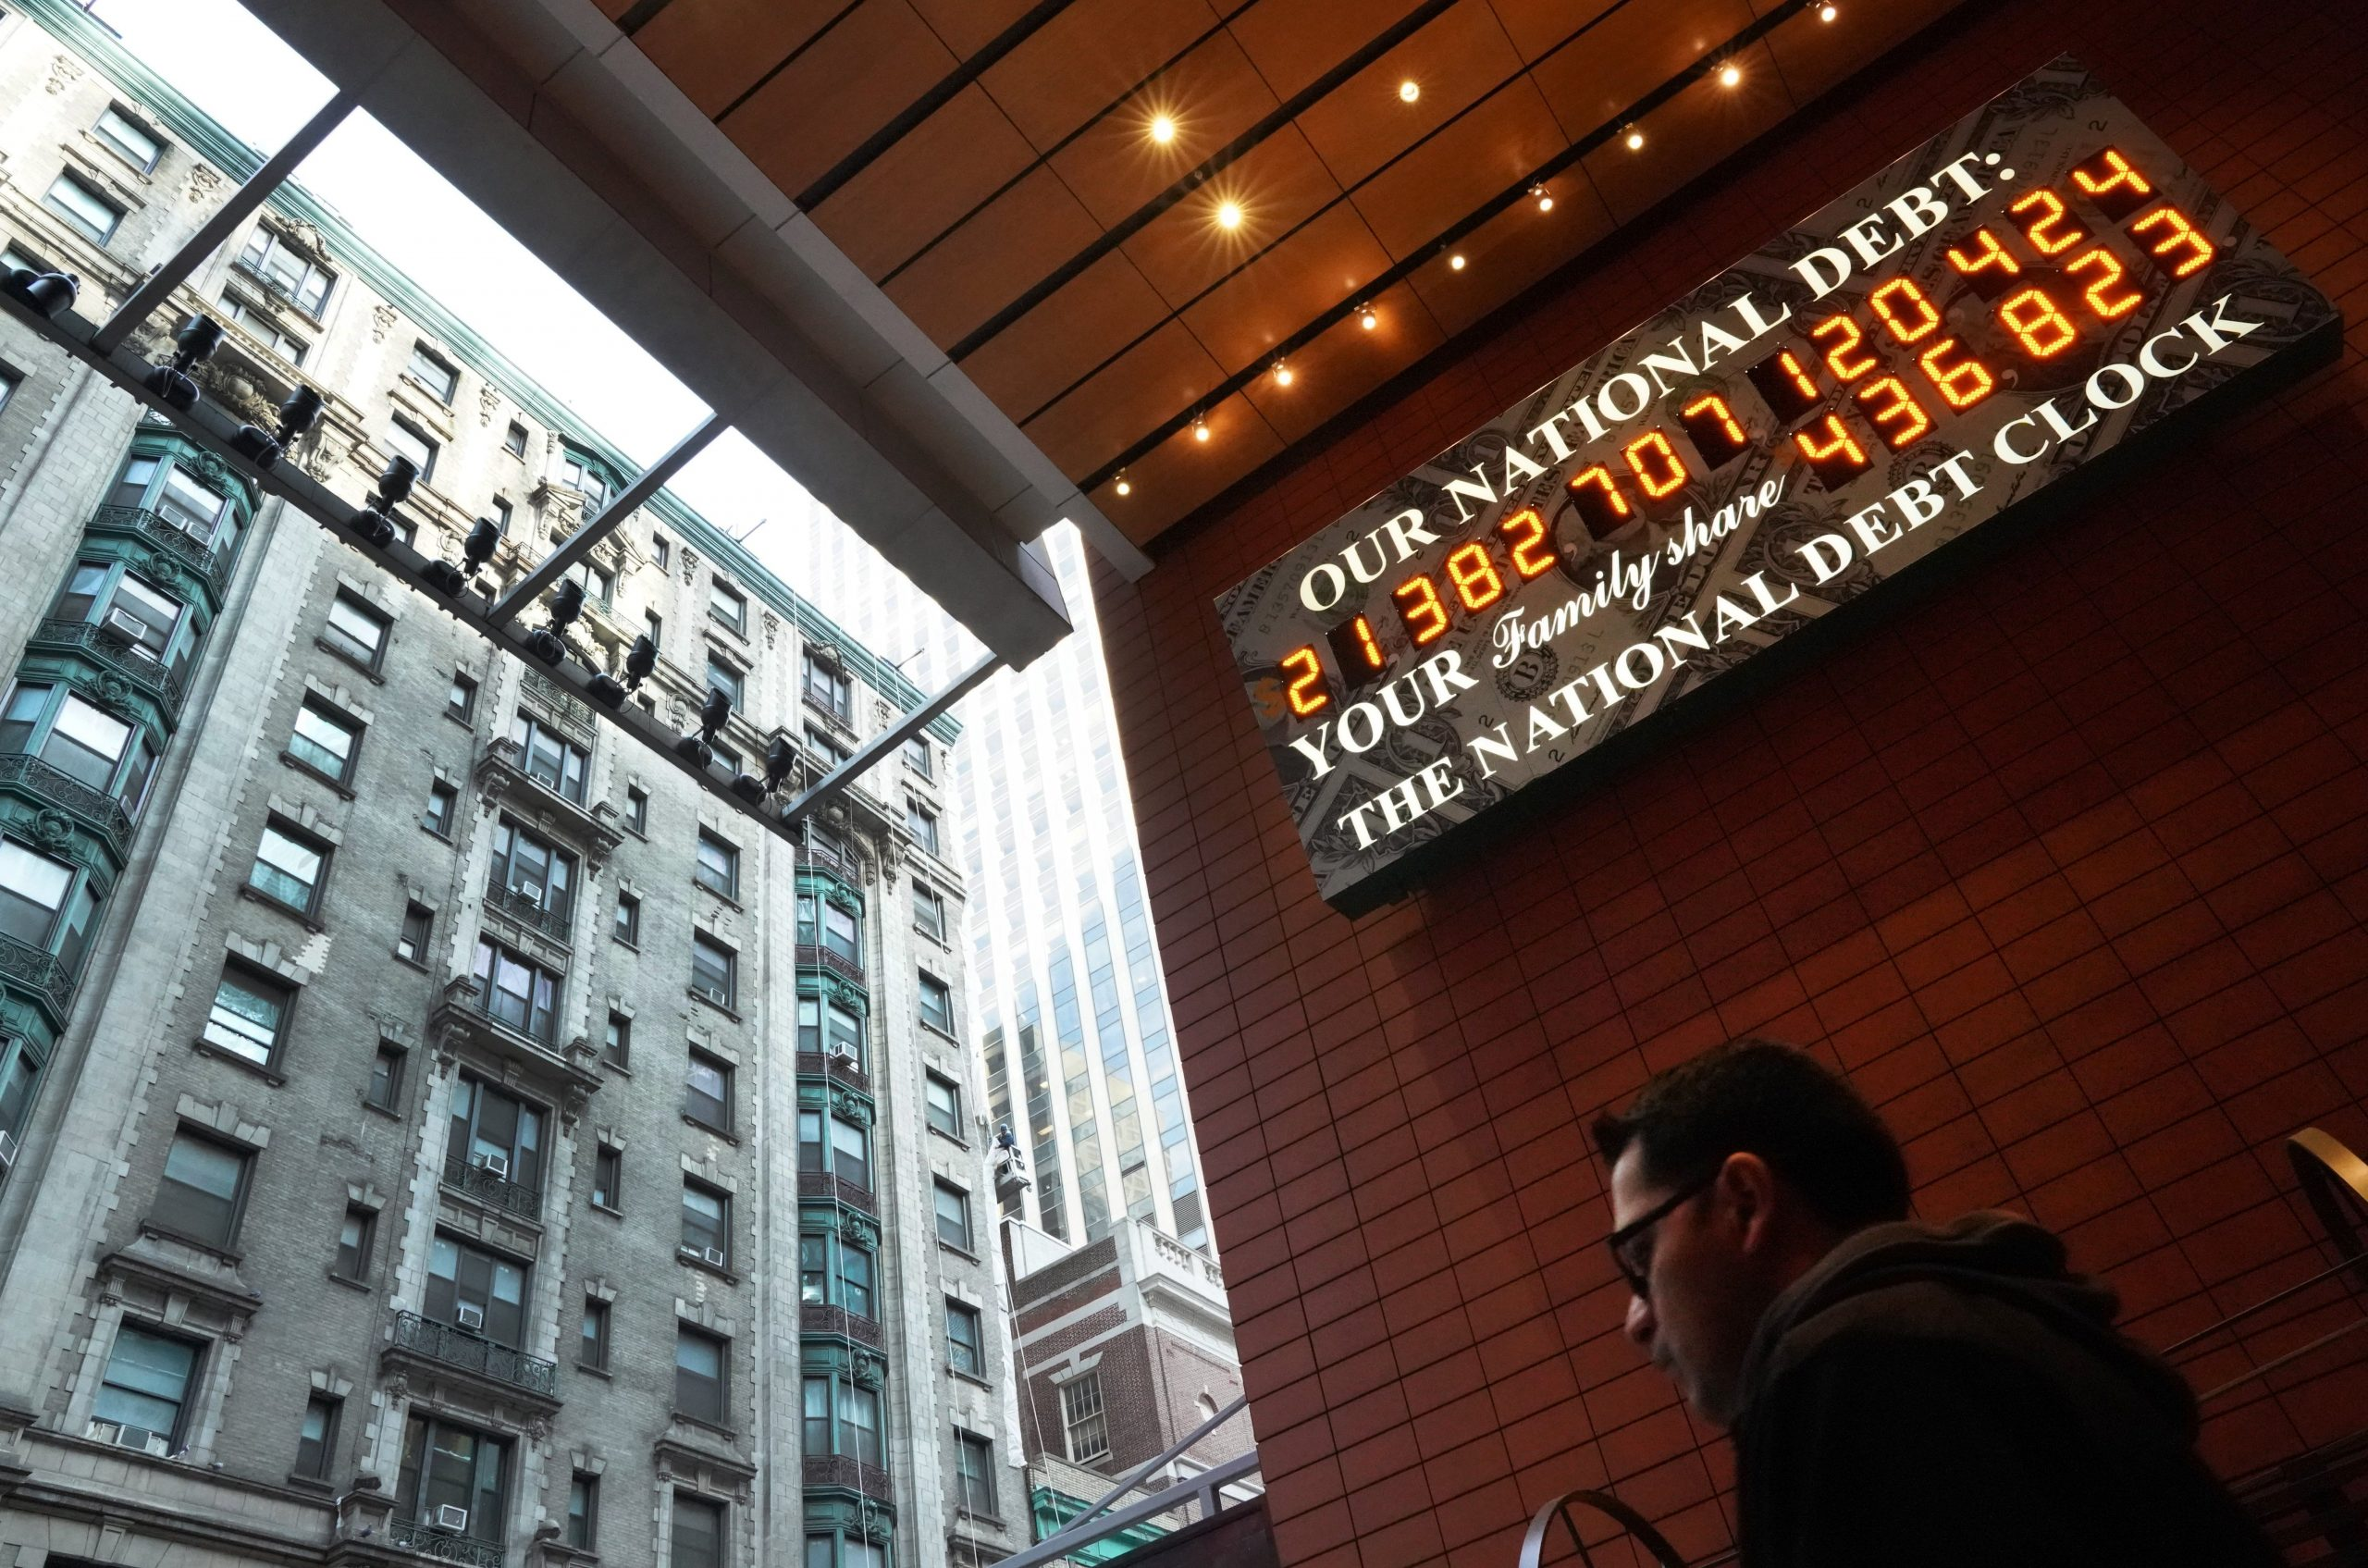 This twelve months's Underground Sensation: Up-to-the-minute Financial Theory